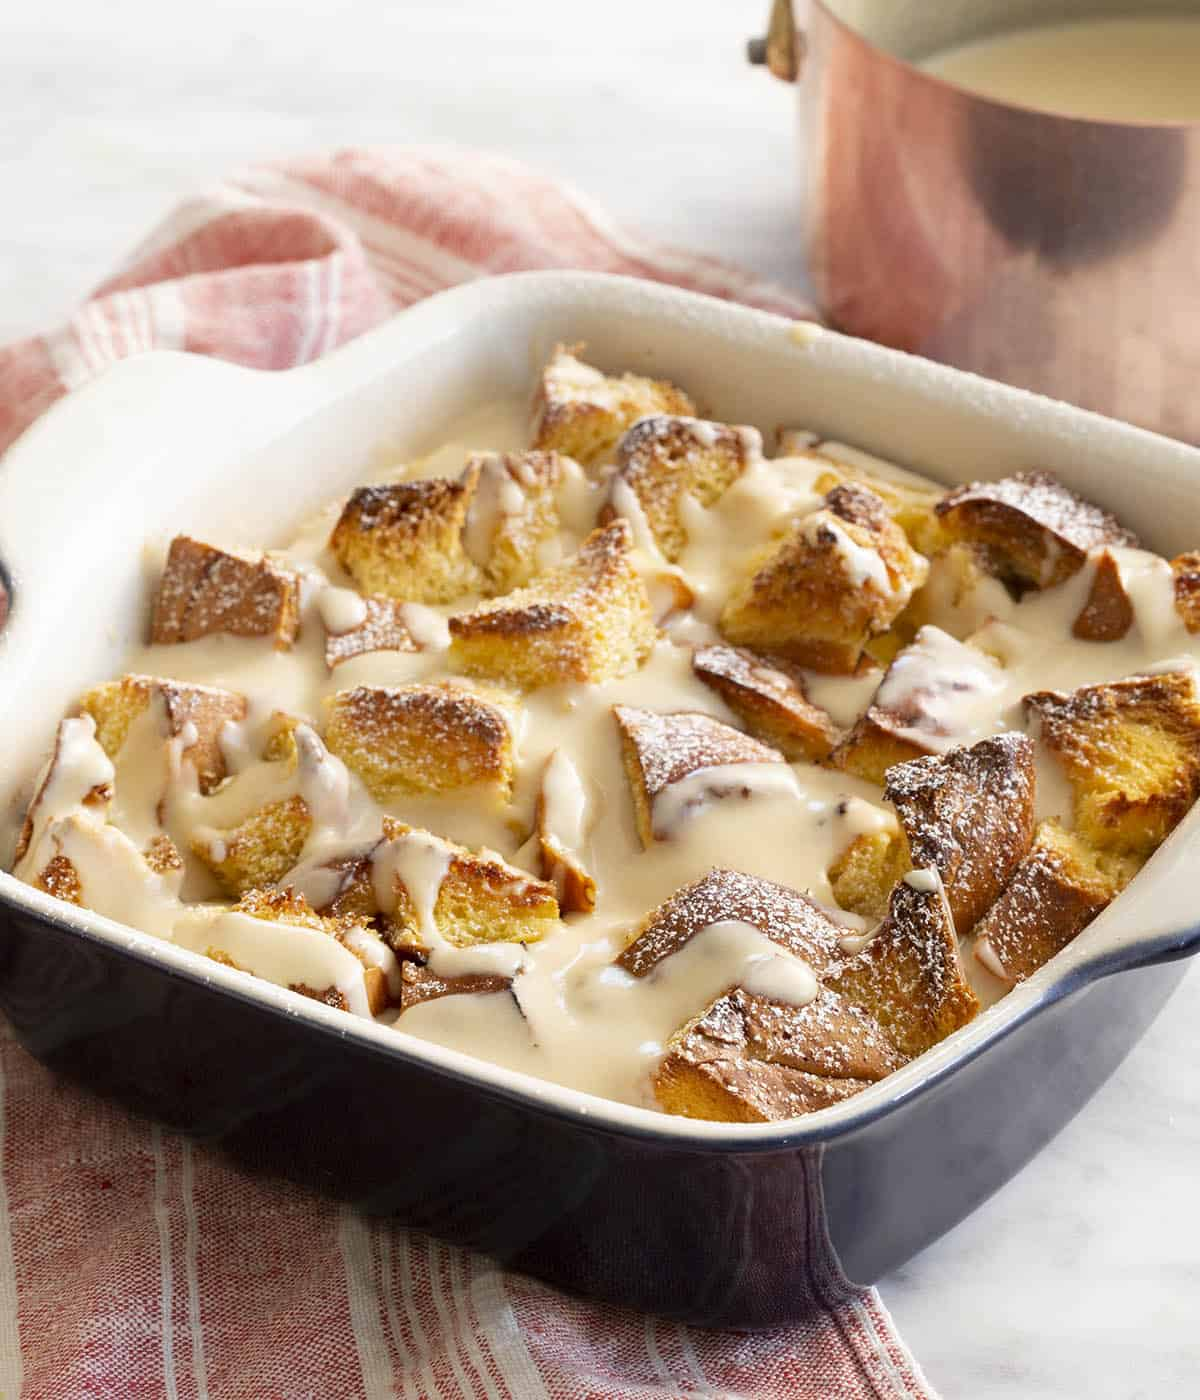 Bread pudding topped with rum sauce in a square baking dish.